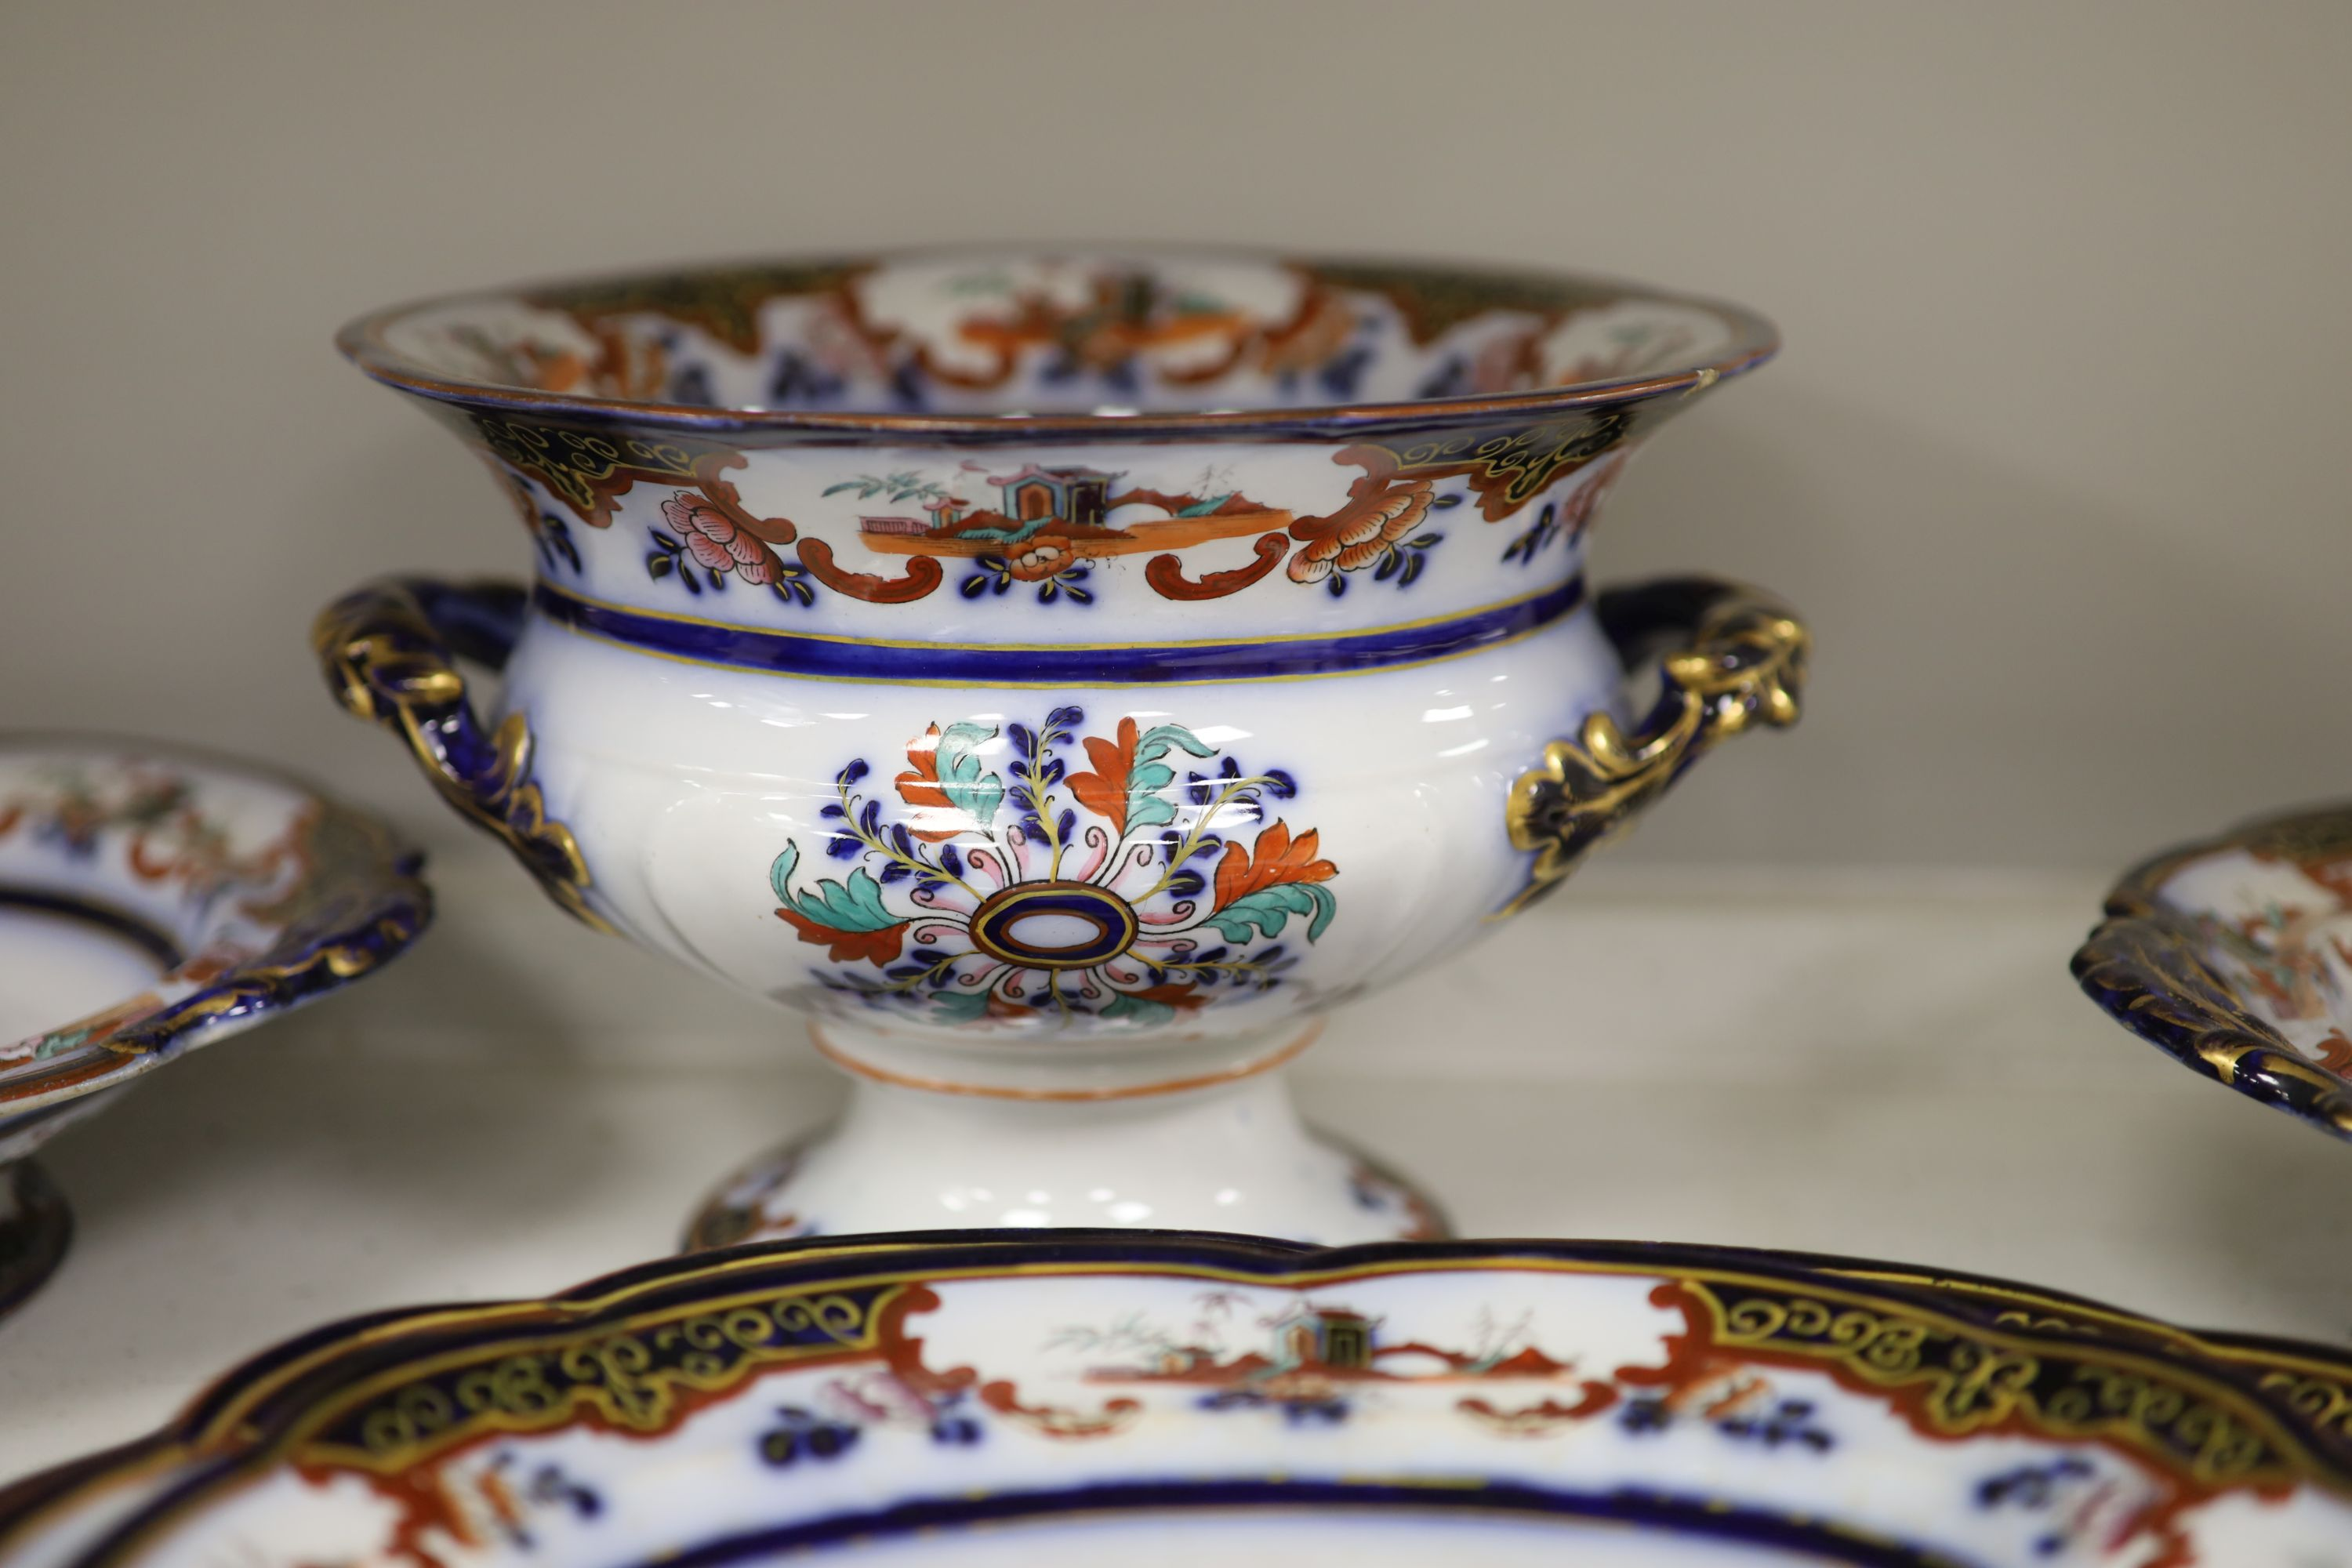 A 19th century earthenware dinner service - Image 6 of 7